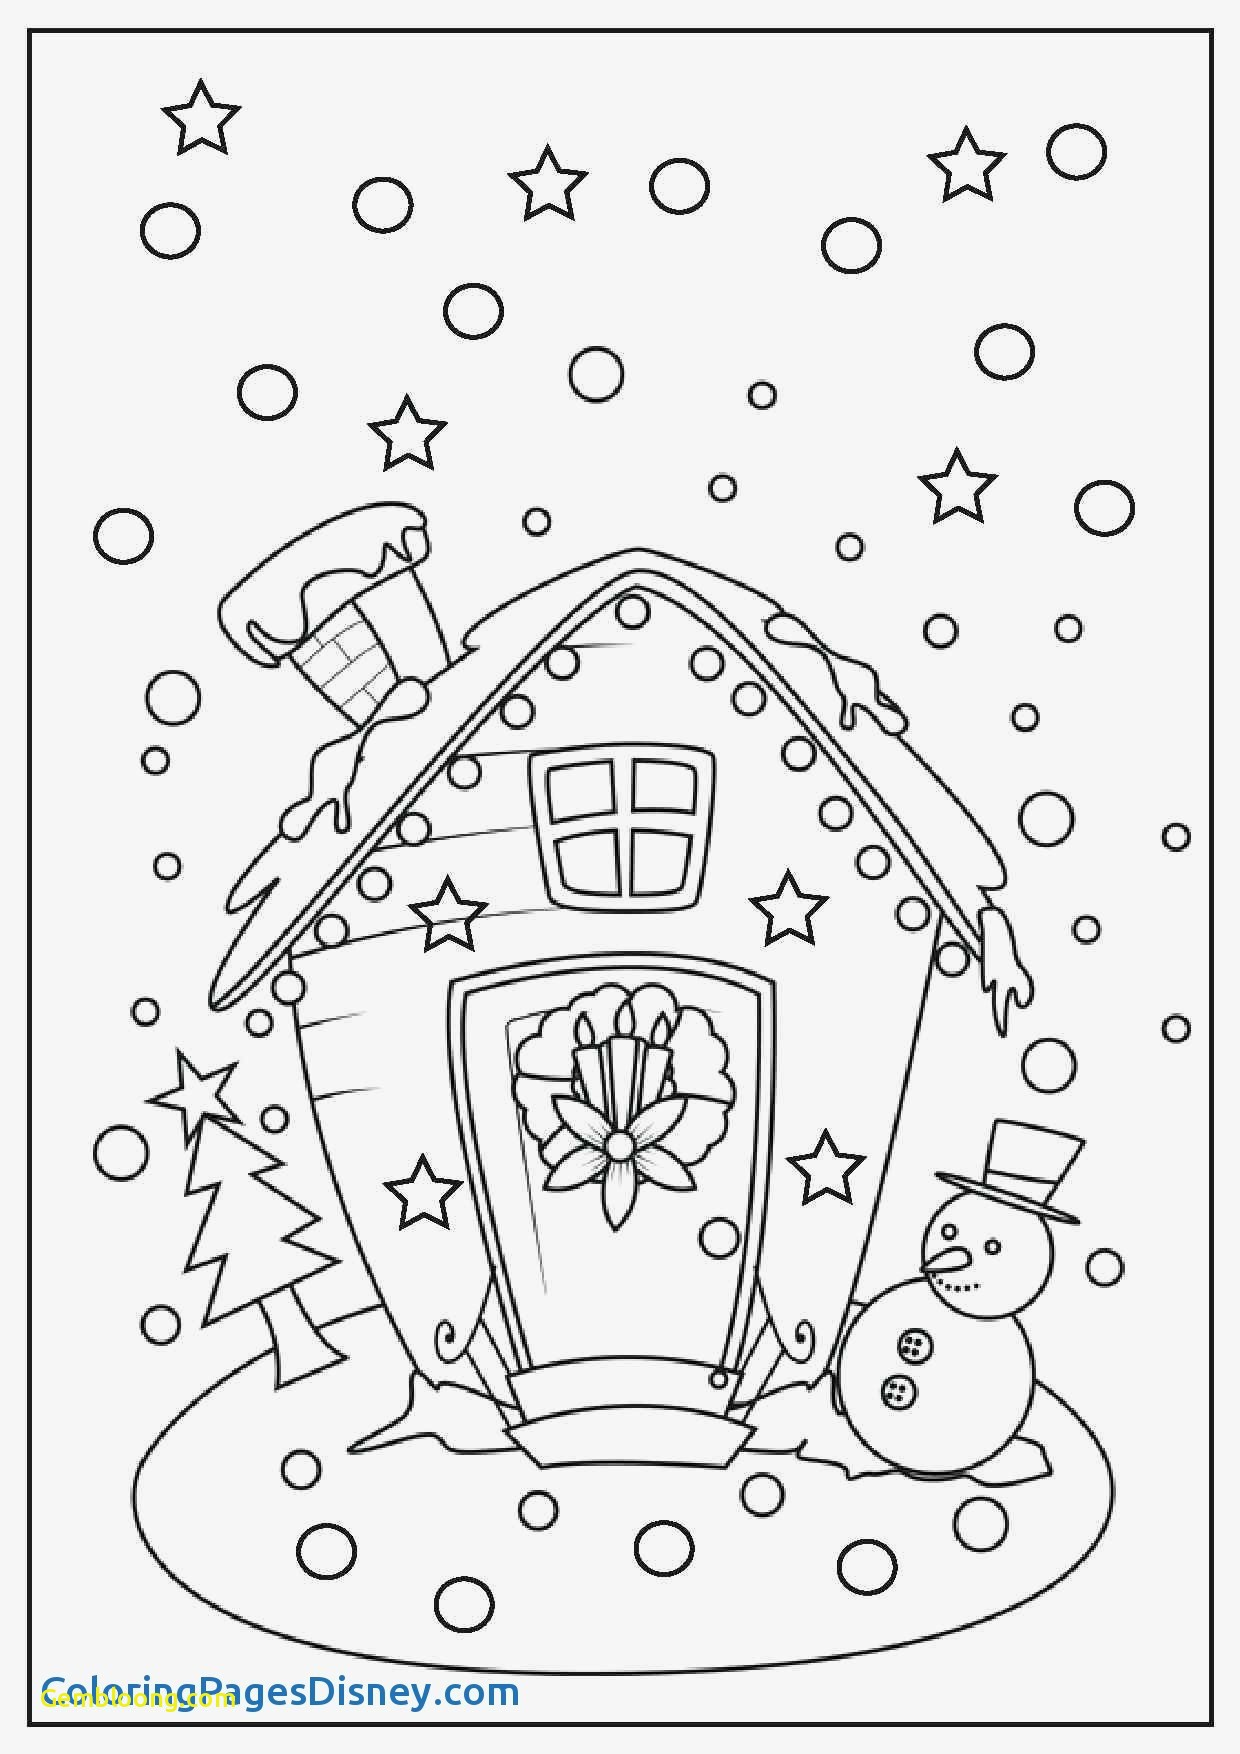 Christmas Colouring Pages Ks2 With Printable Coloring For Sunday School Children